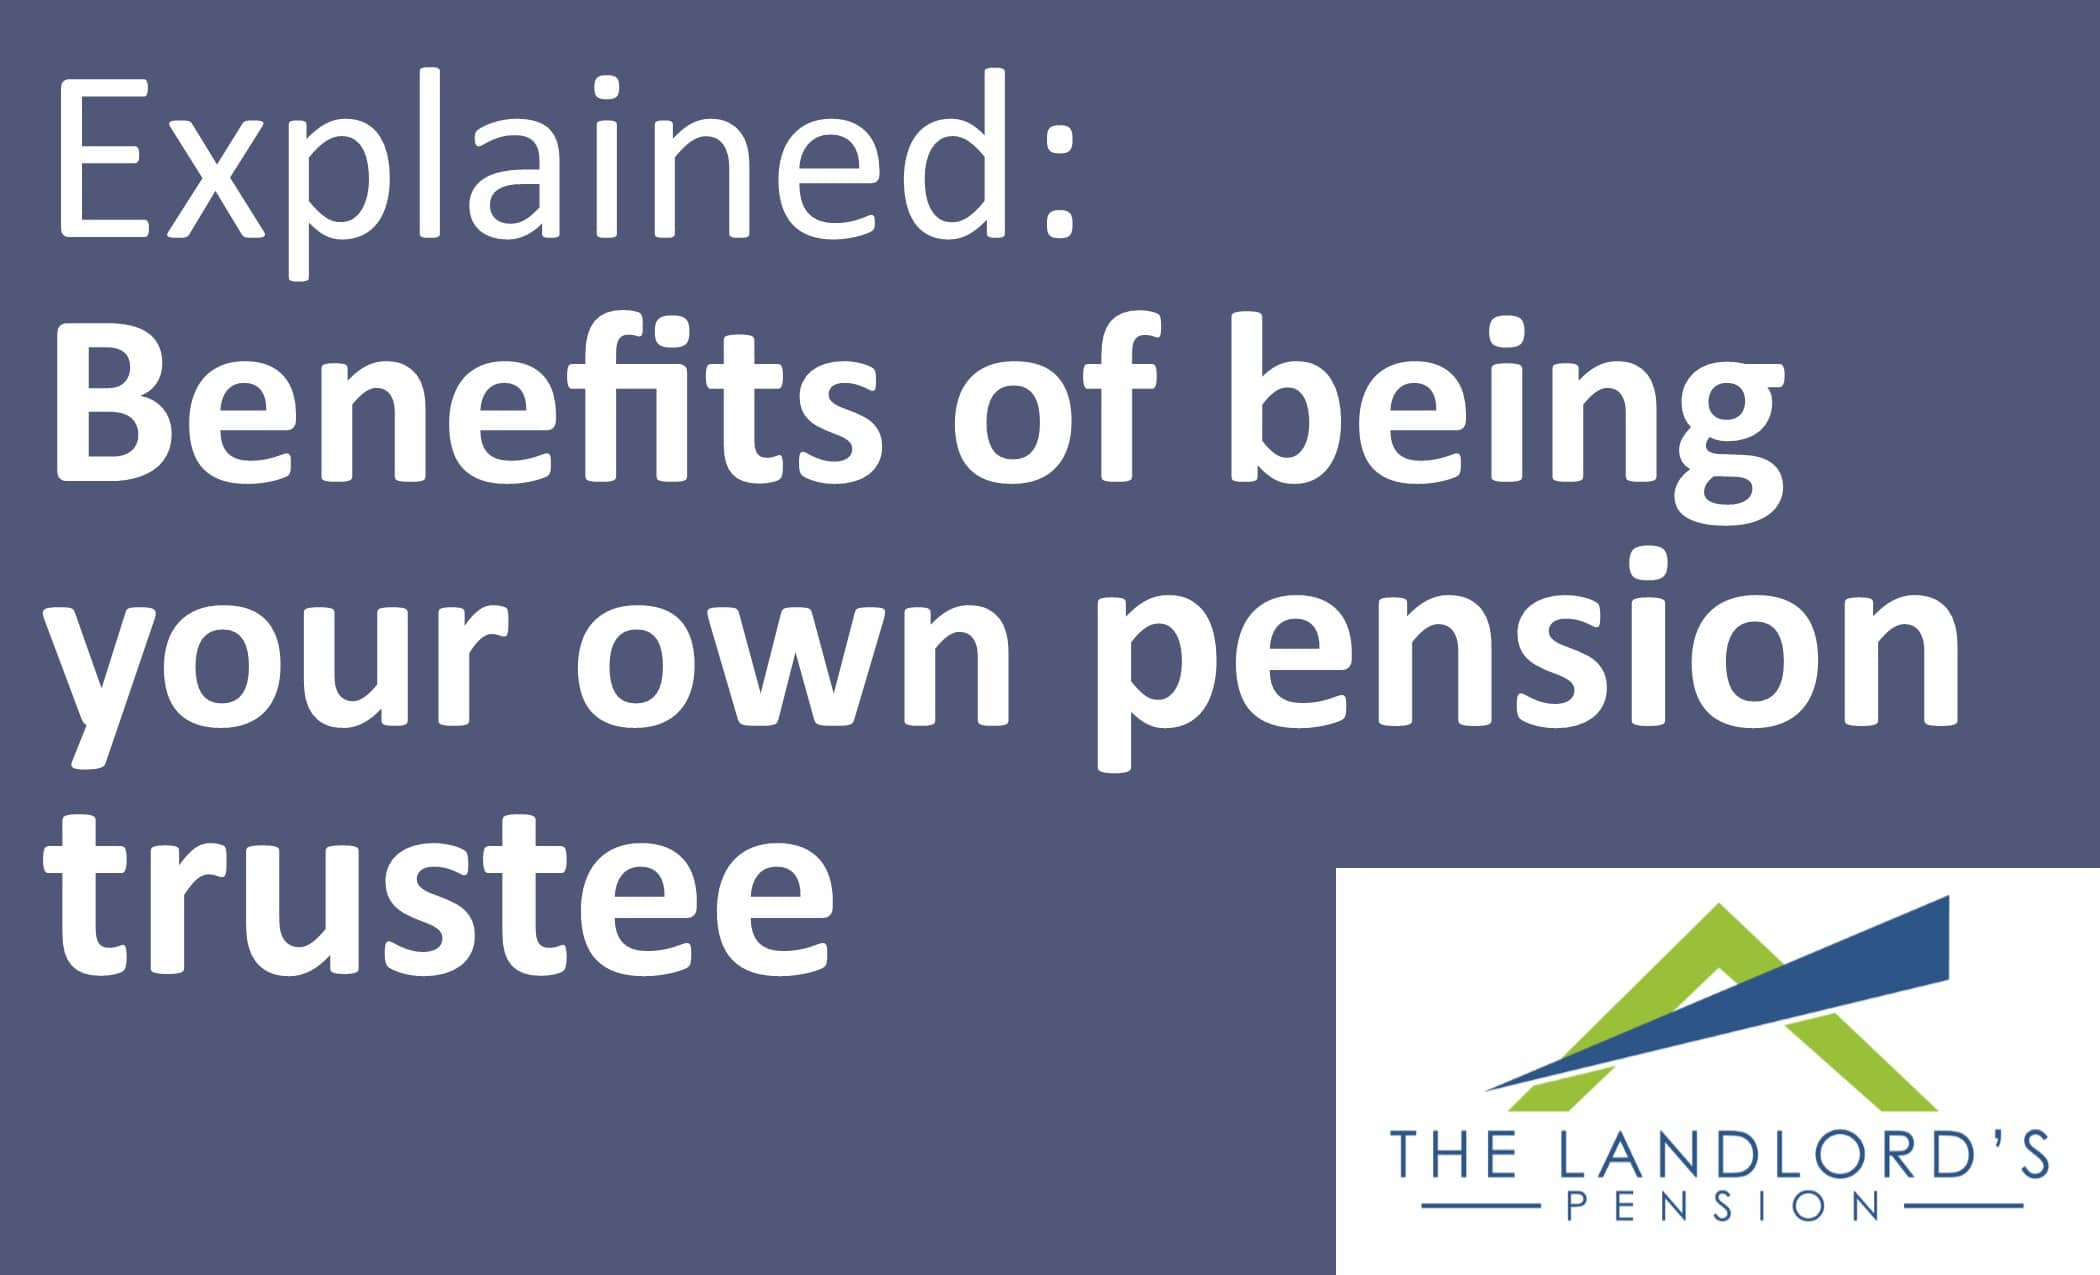 Why you should be your own pension trustee